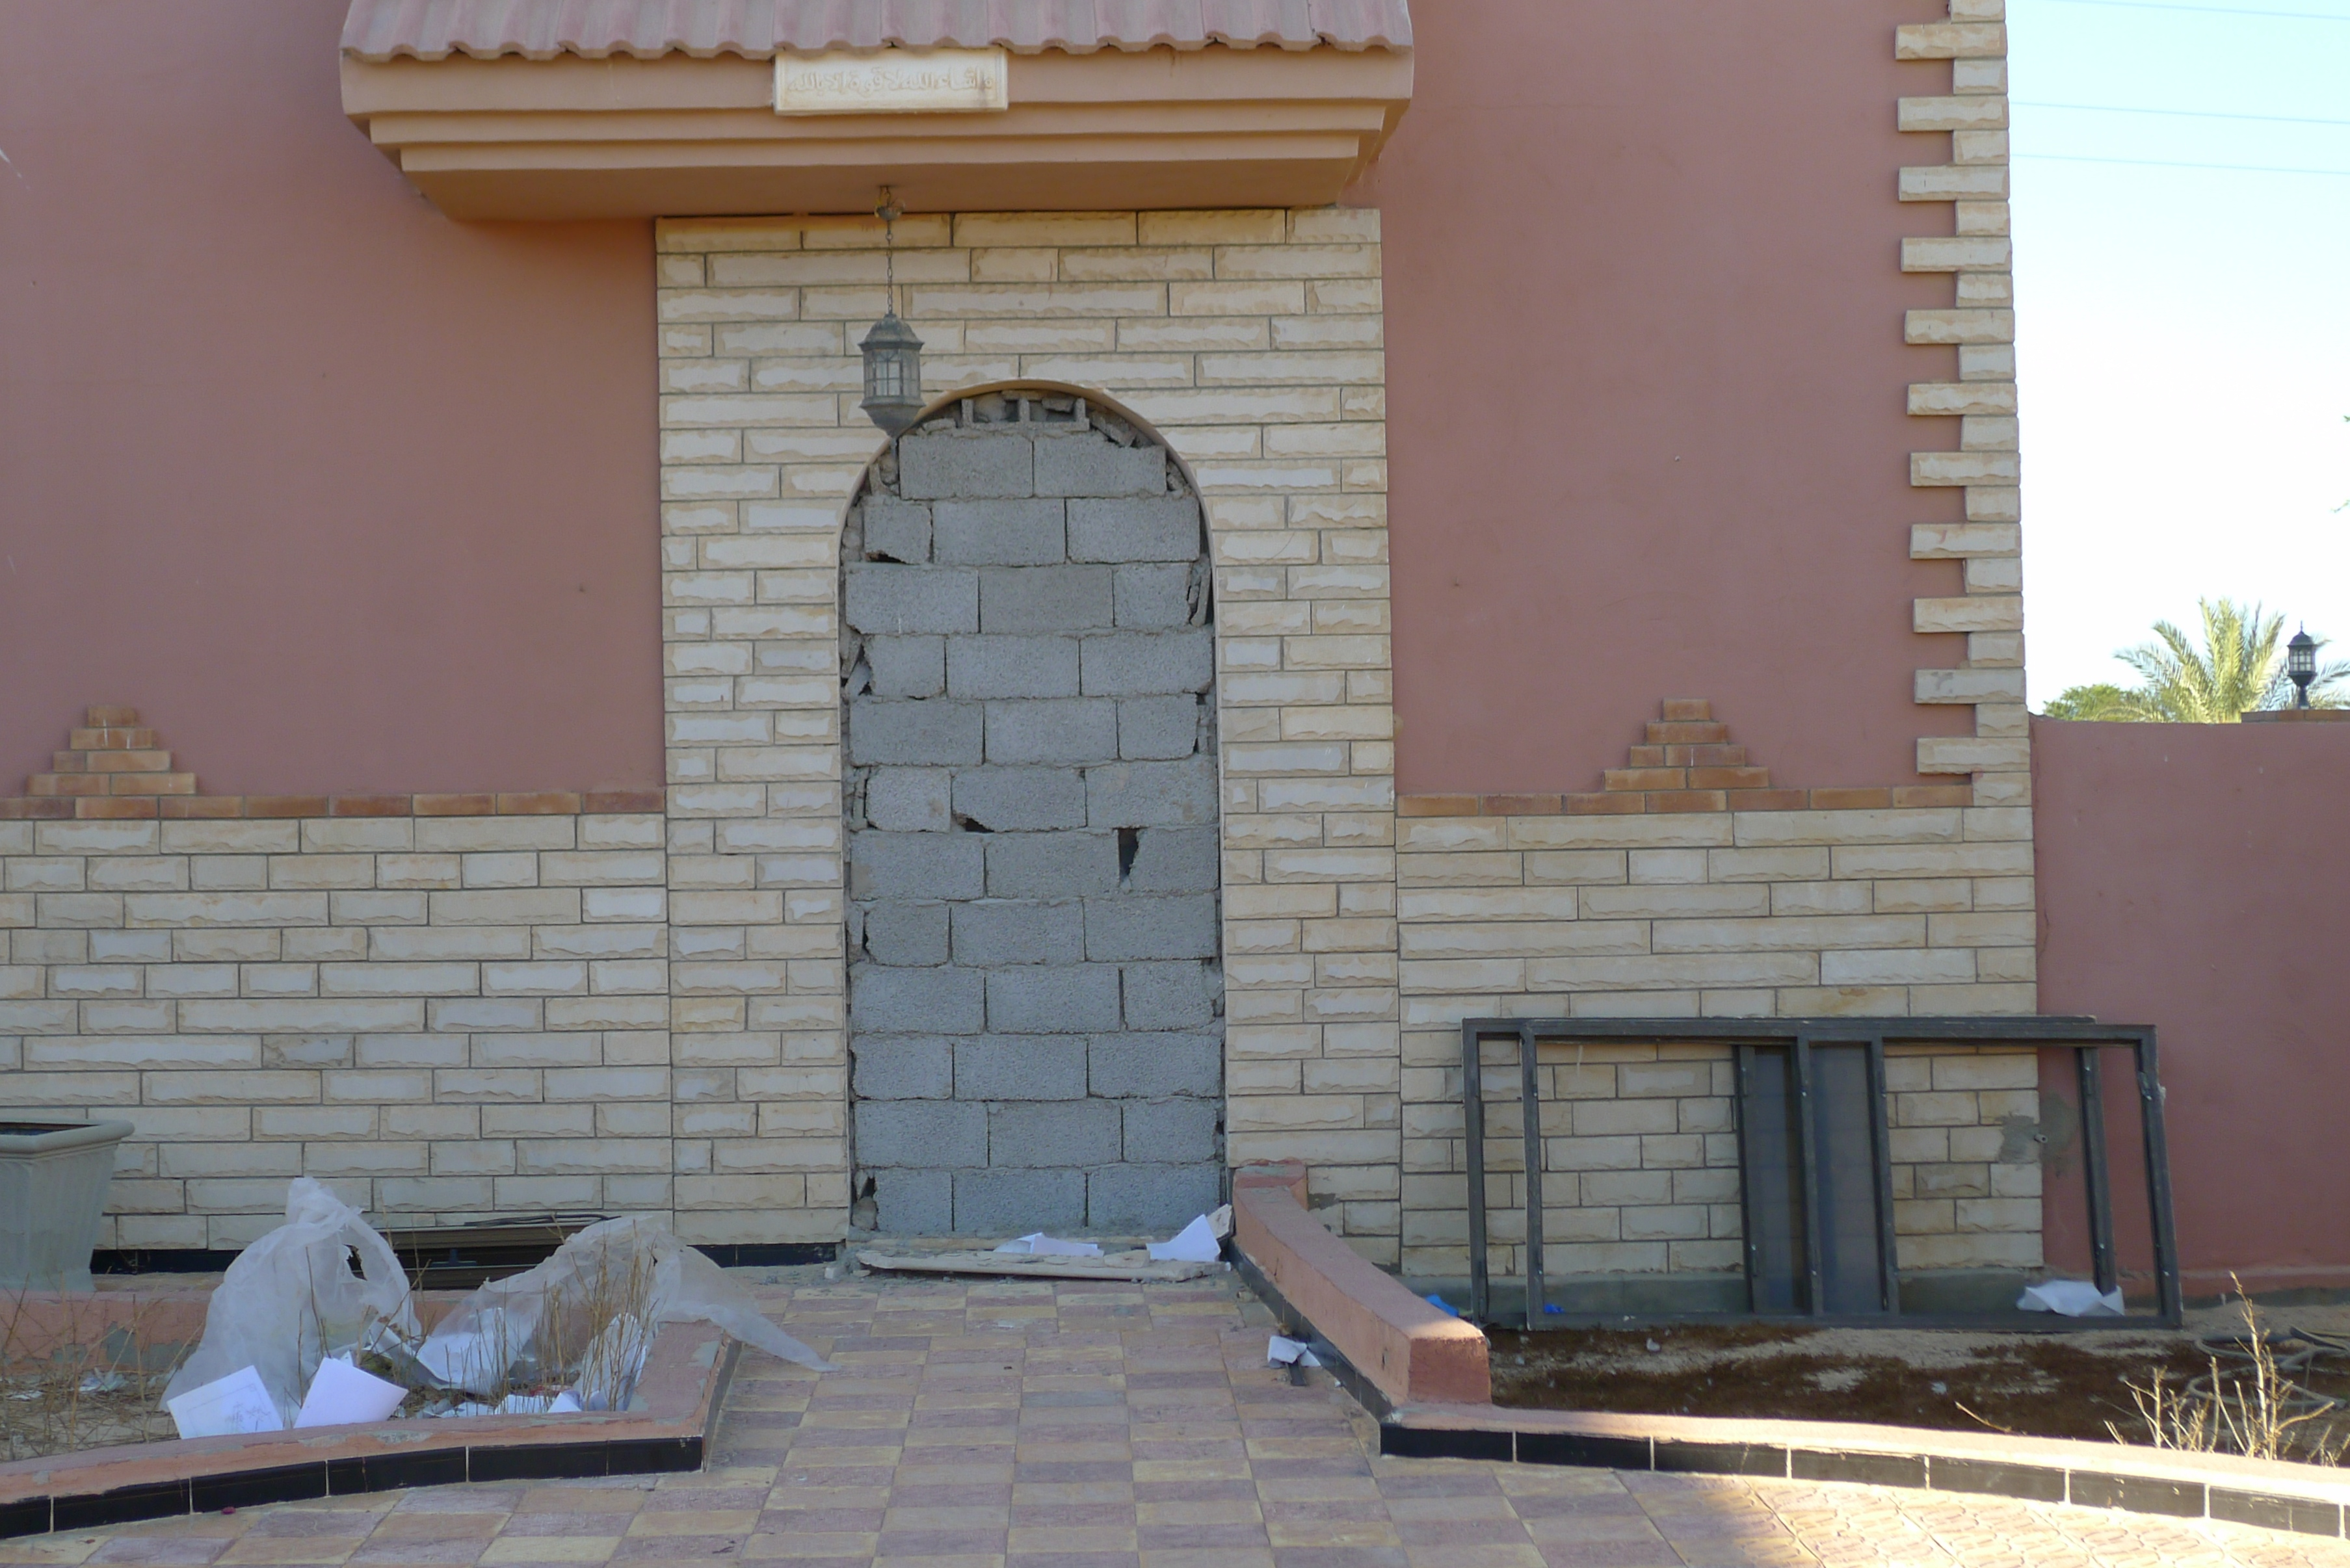 A bricked up doorway